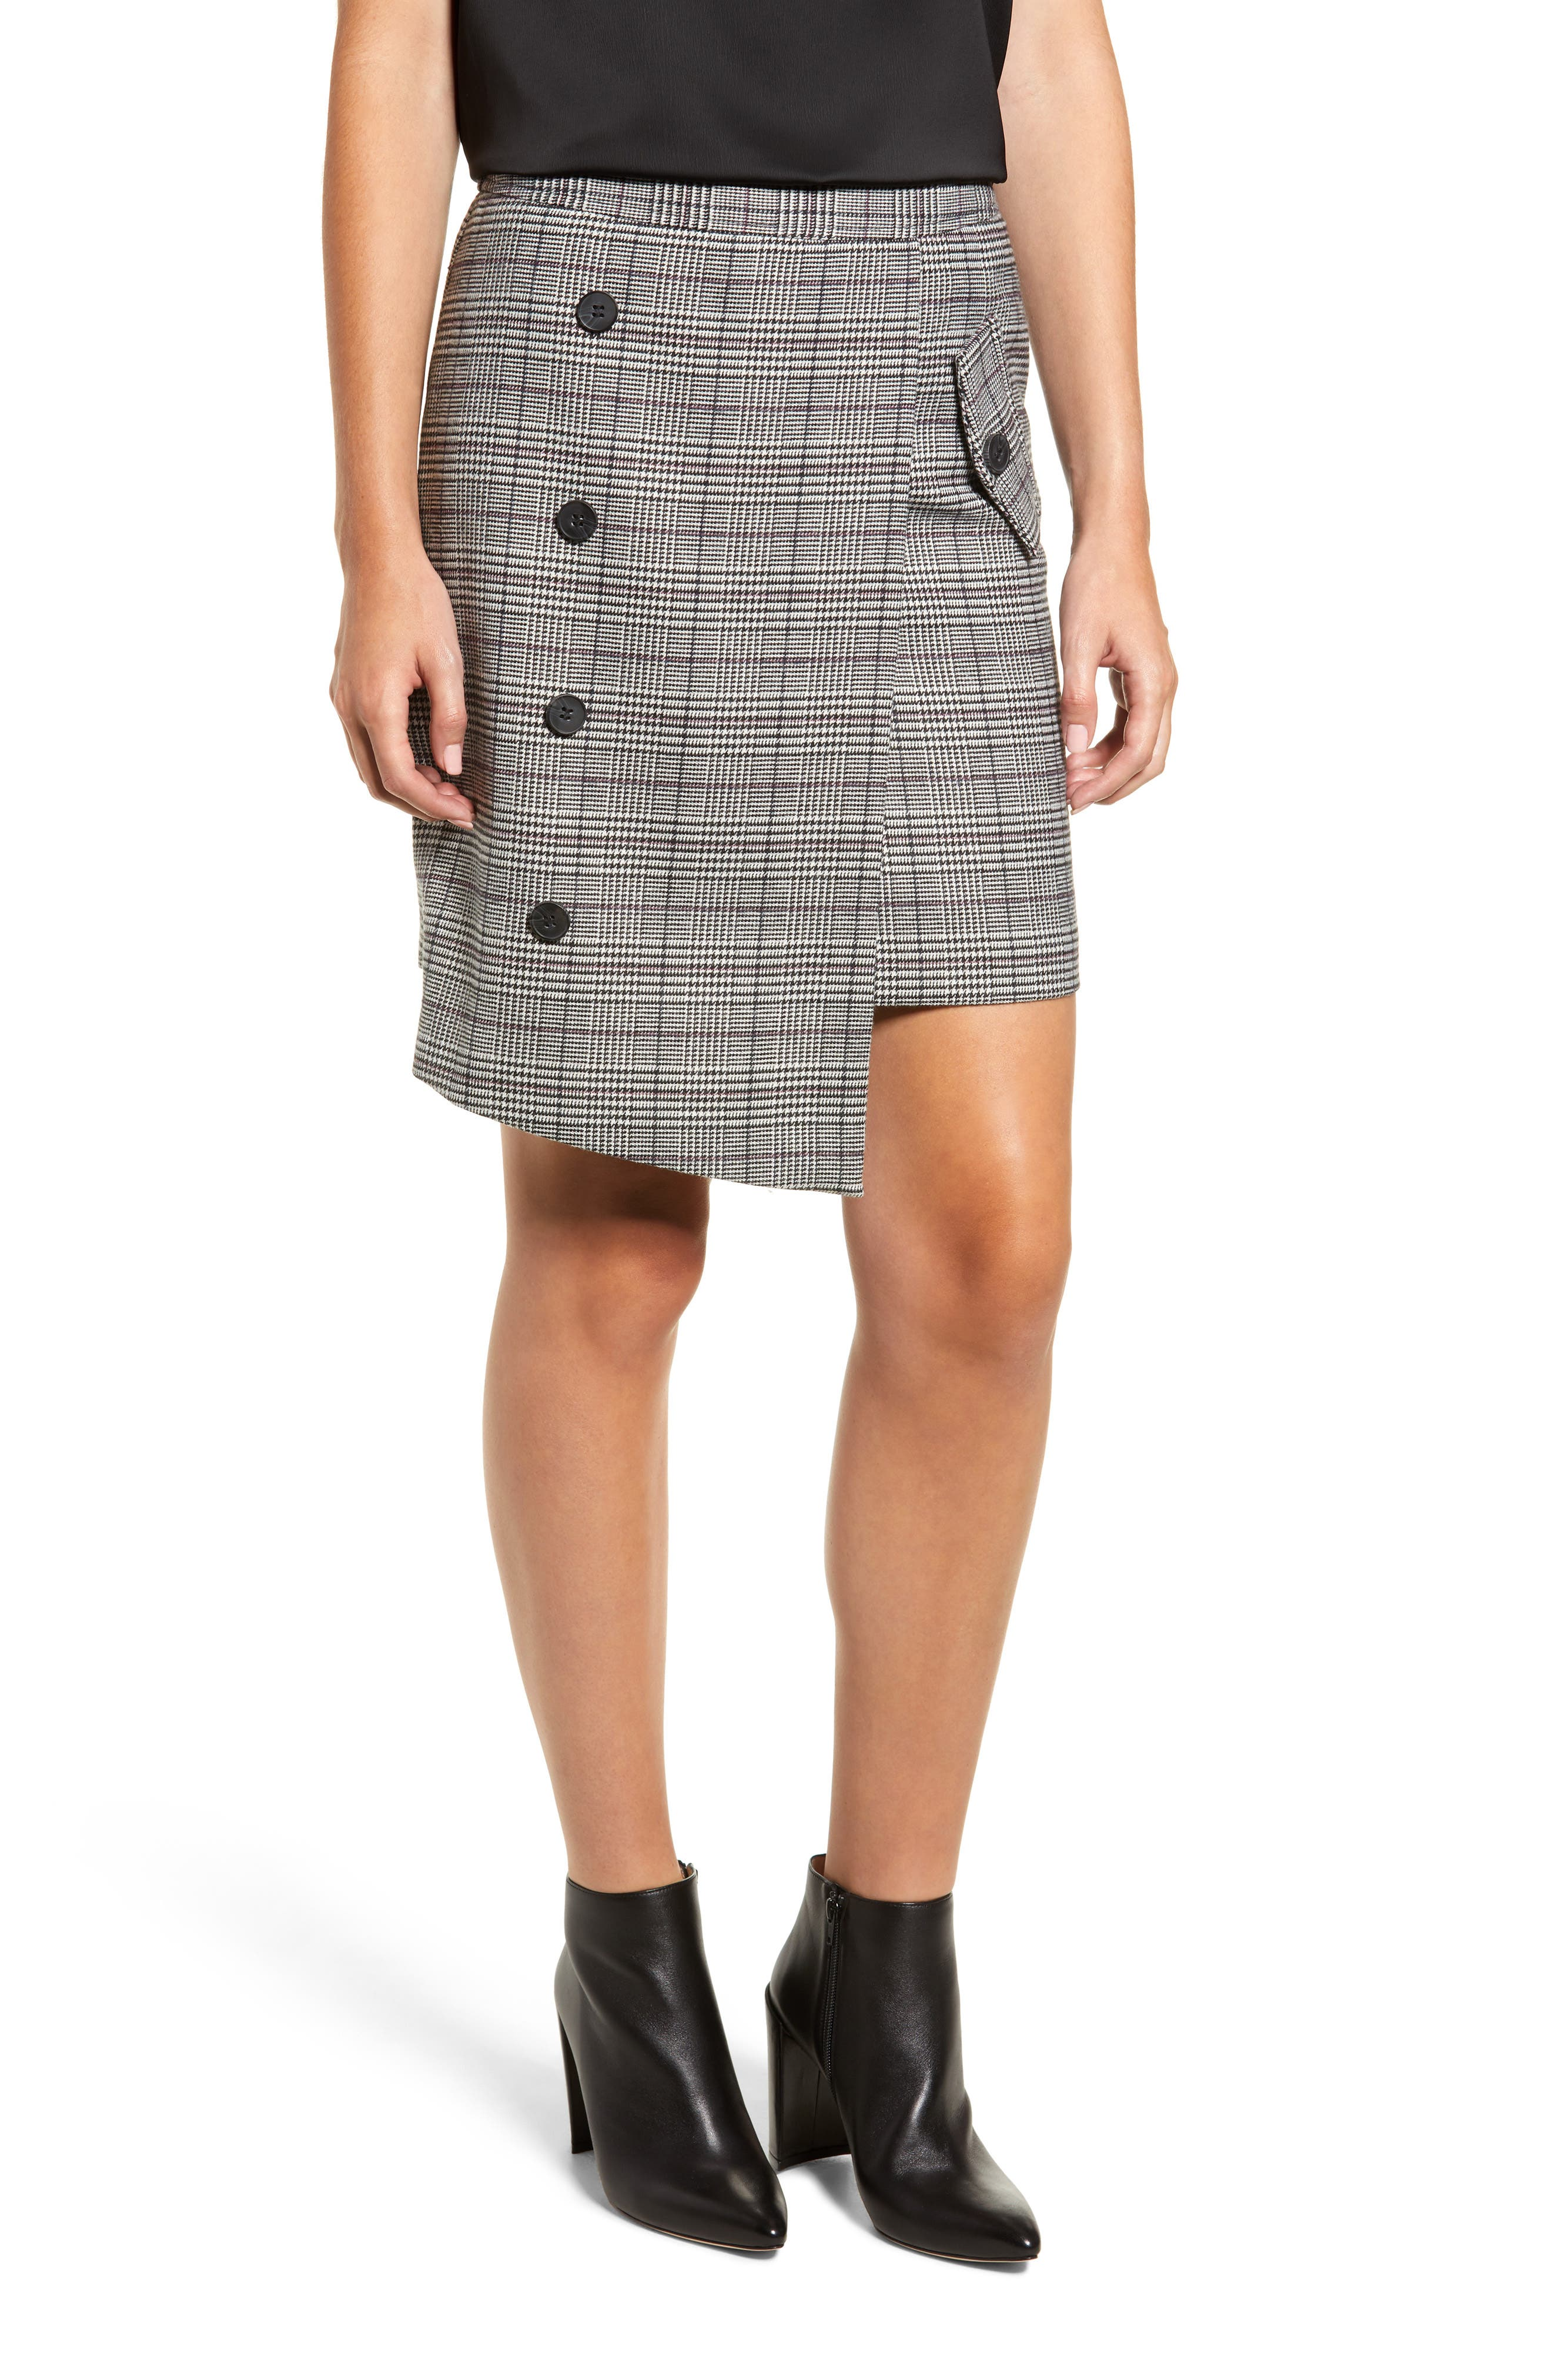 Chriselle Lim Bianca Houndstooth Button Front Skirt,                         Main,                         color, GREY PLAID